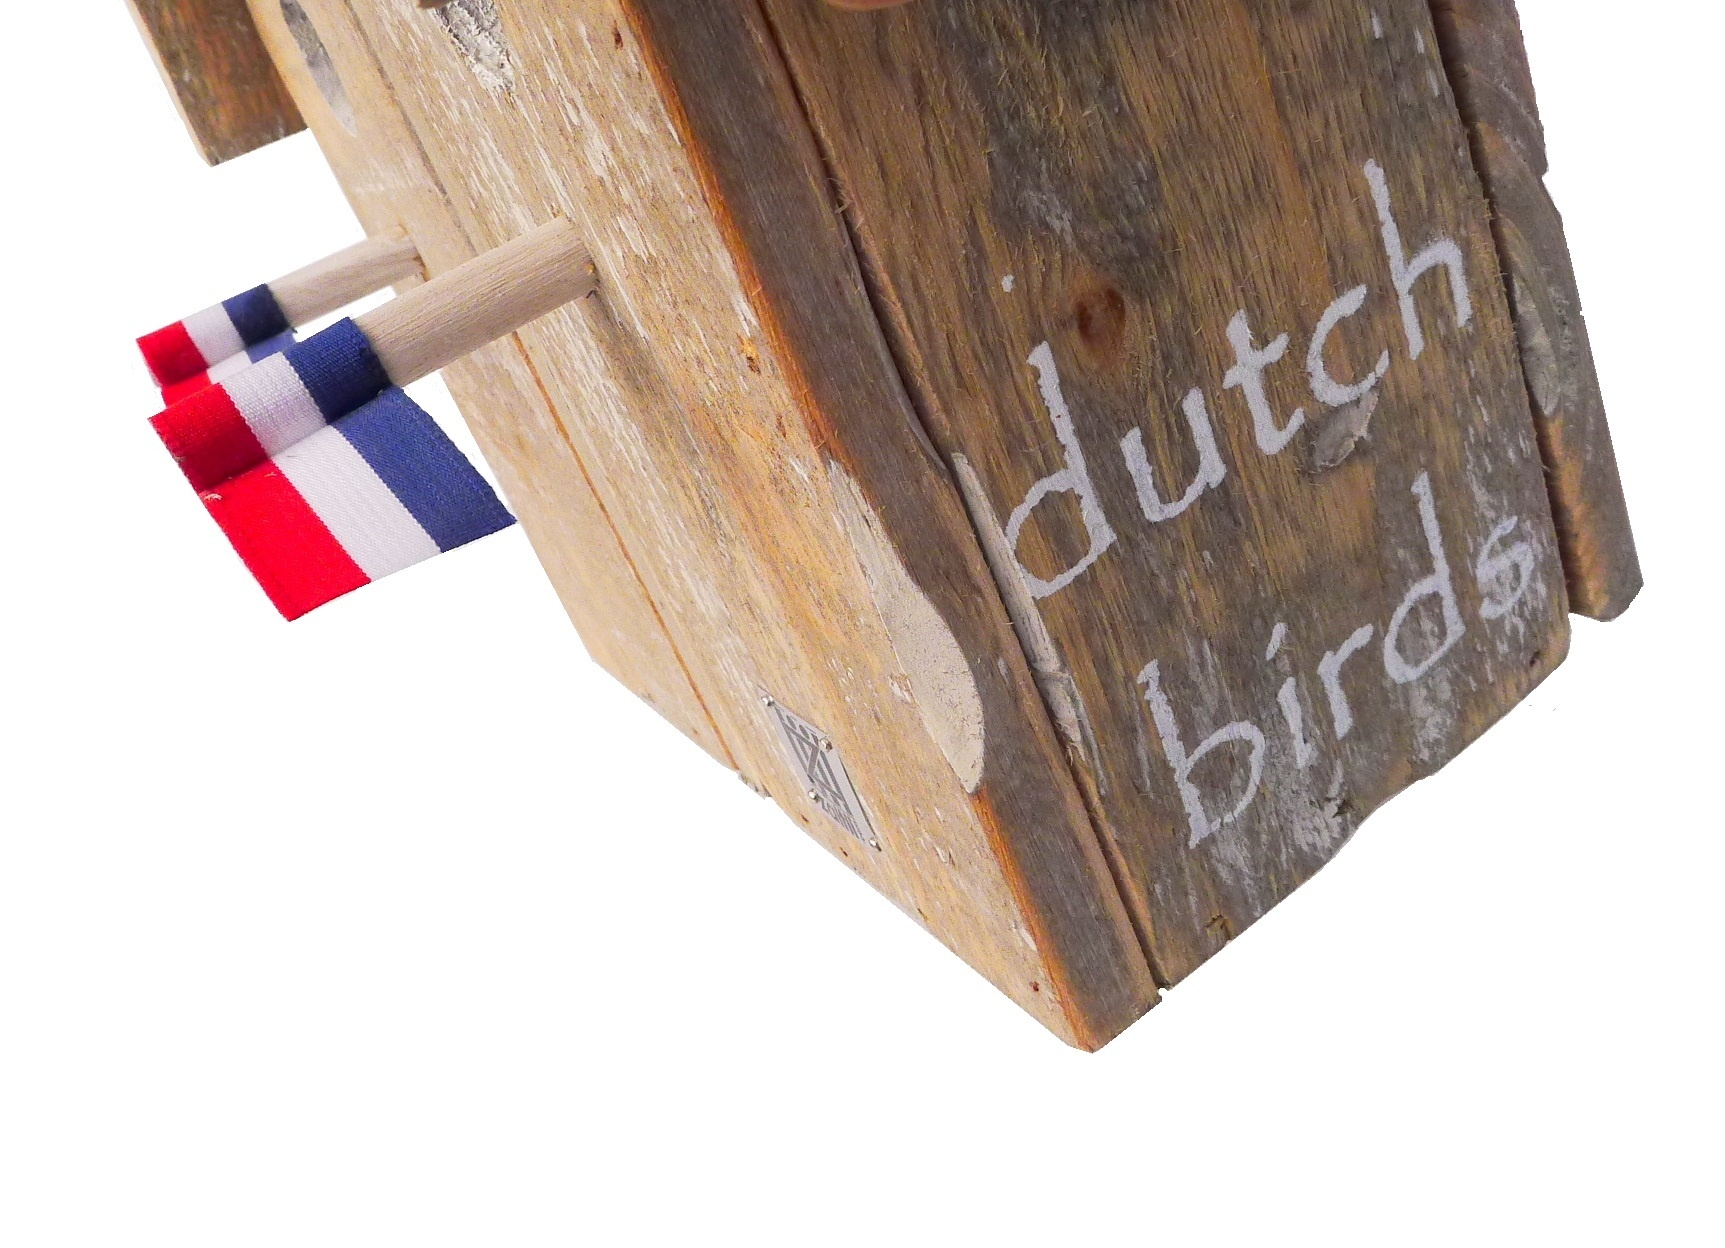 birdhouse old dutch 2 under 1 roof-6